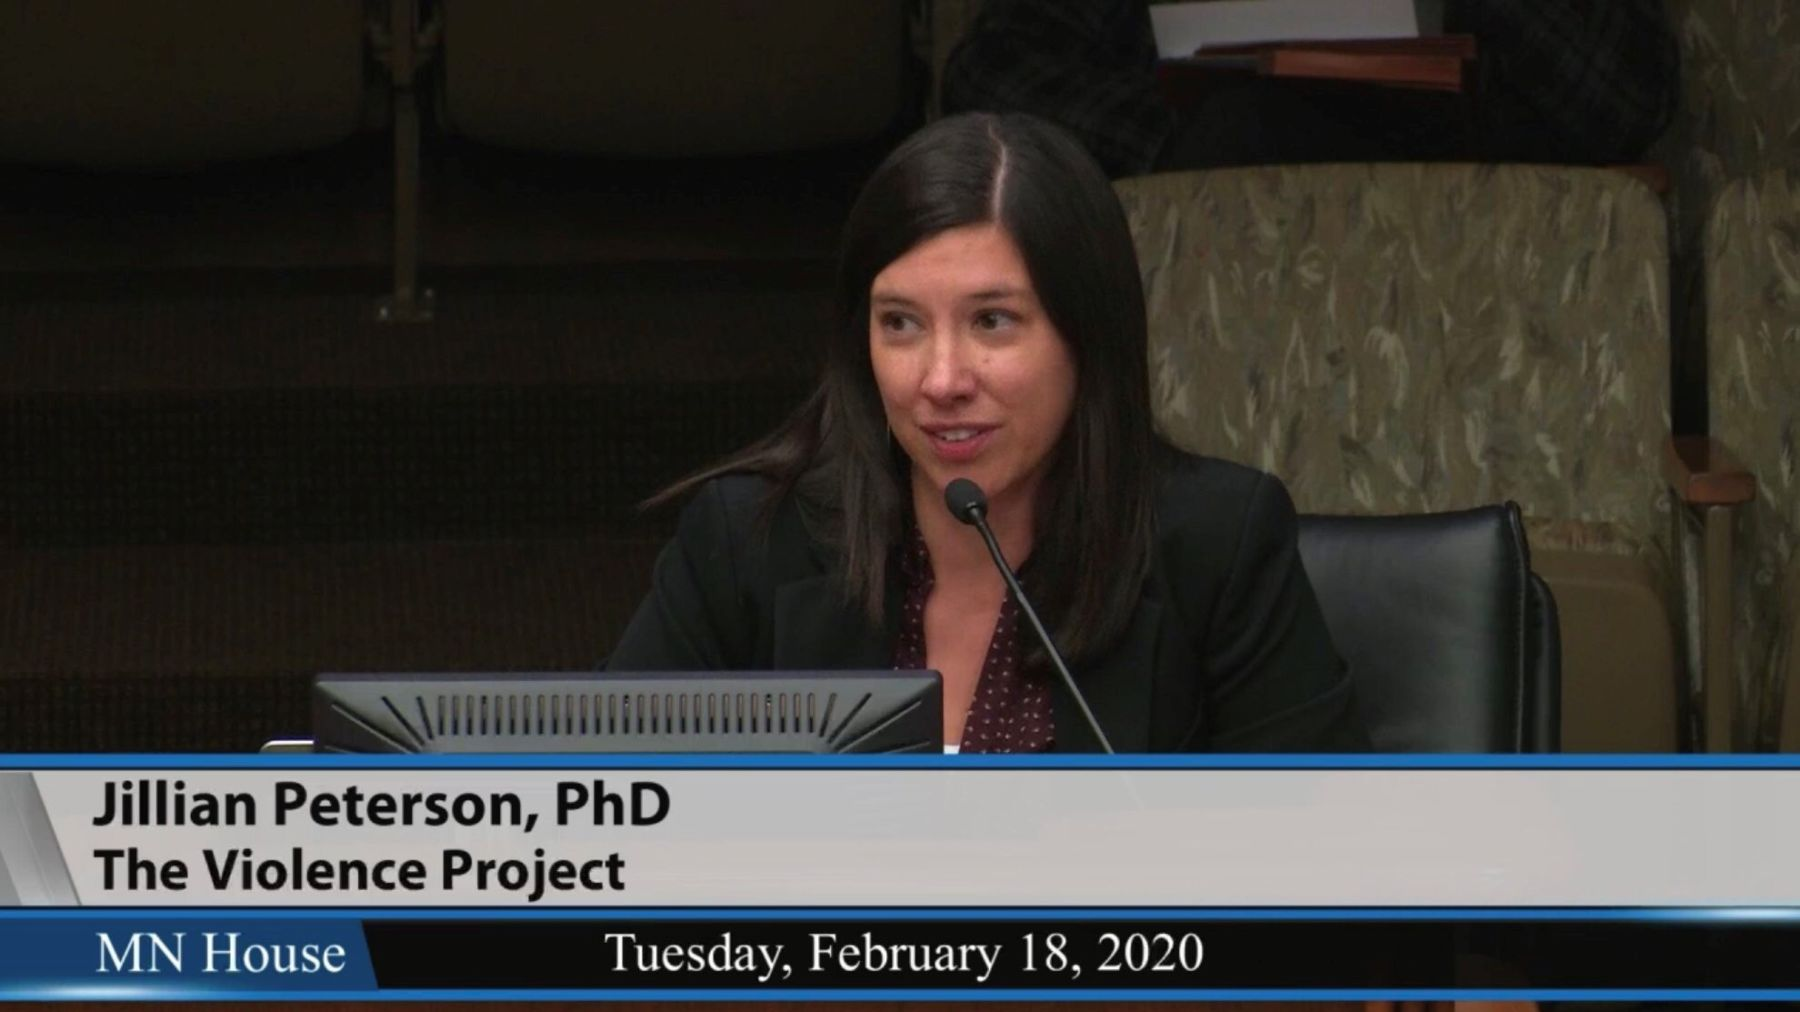 Dr. Jillian Peterson testifying before the MN House of Representatives